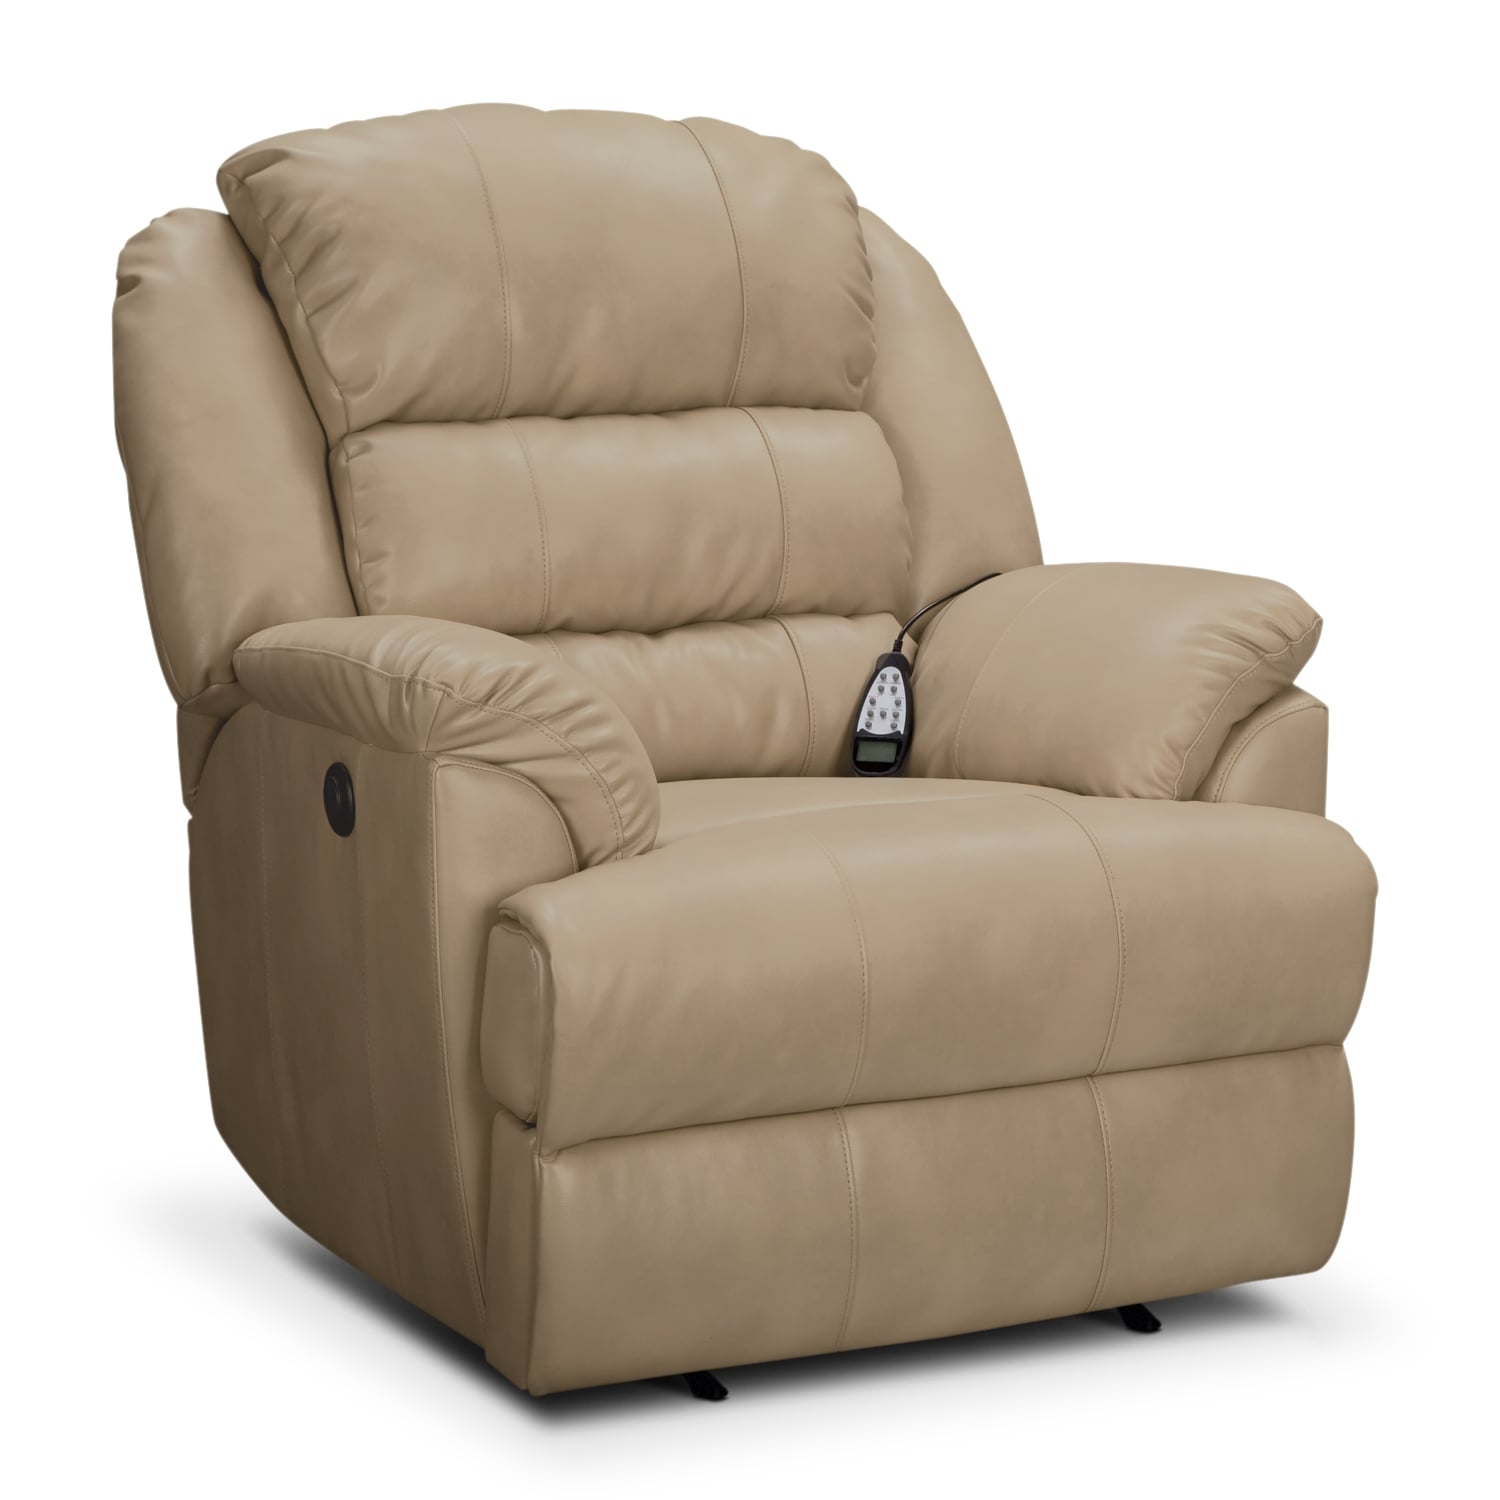 Hunter Leather Power Recliner Value City Furniture